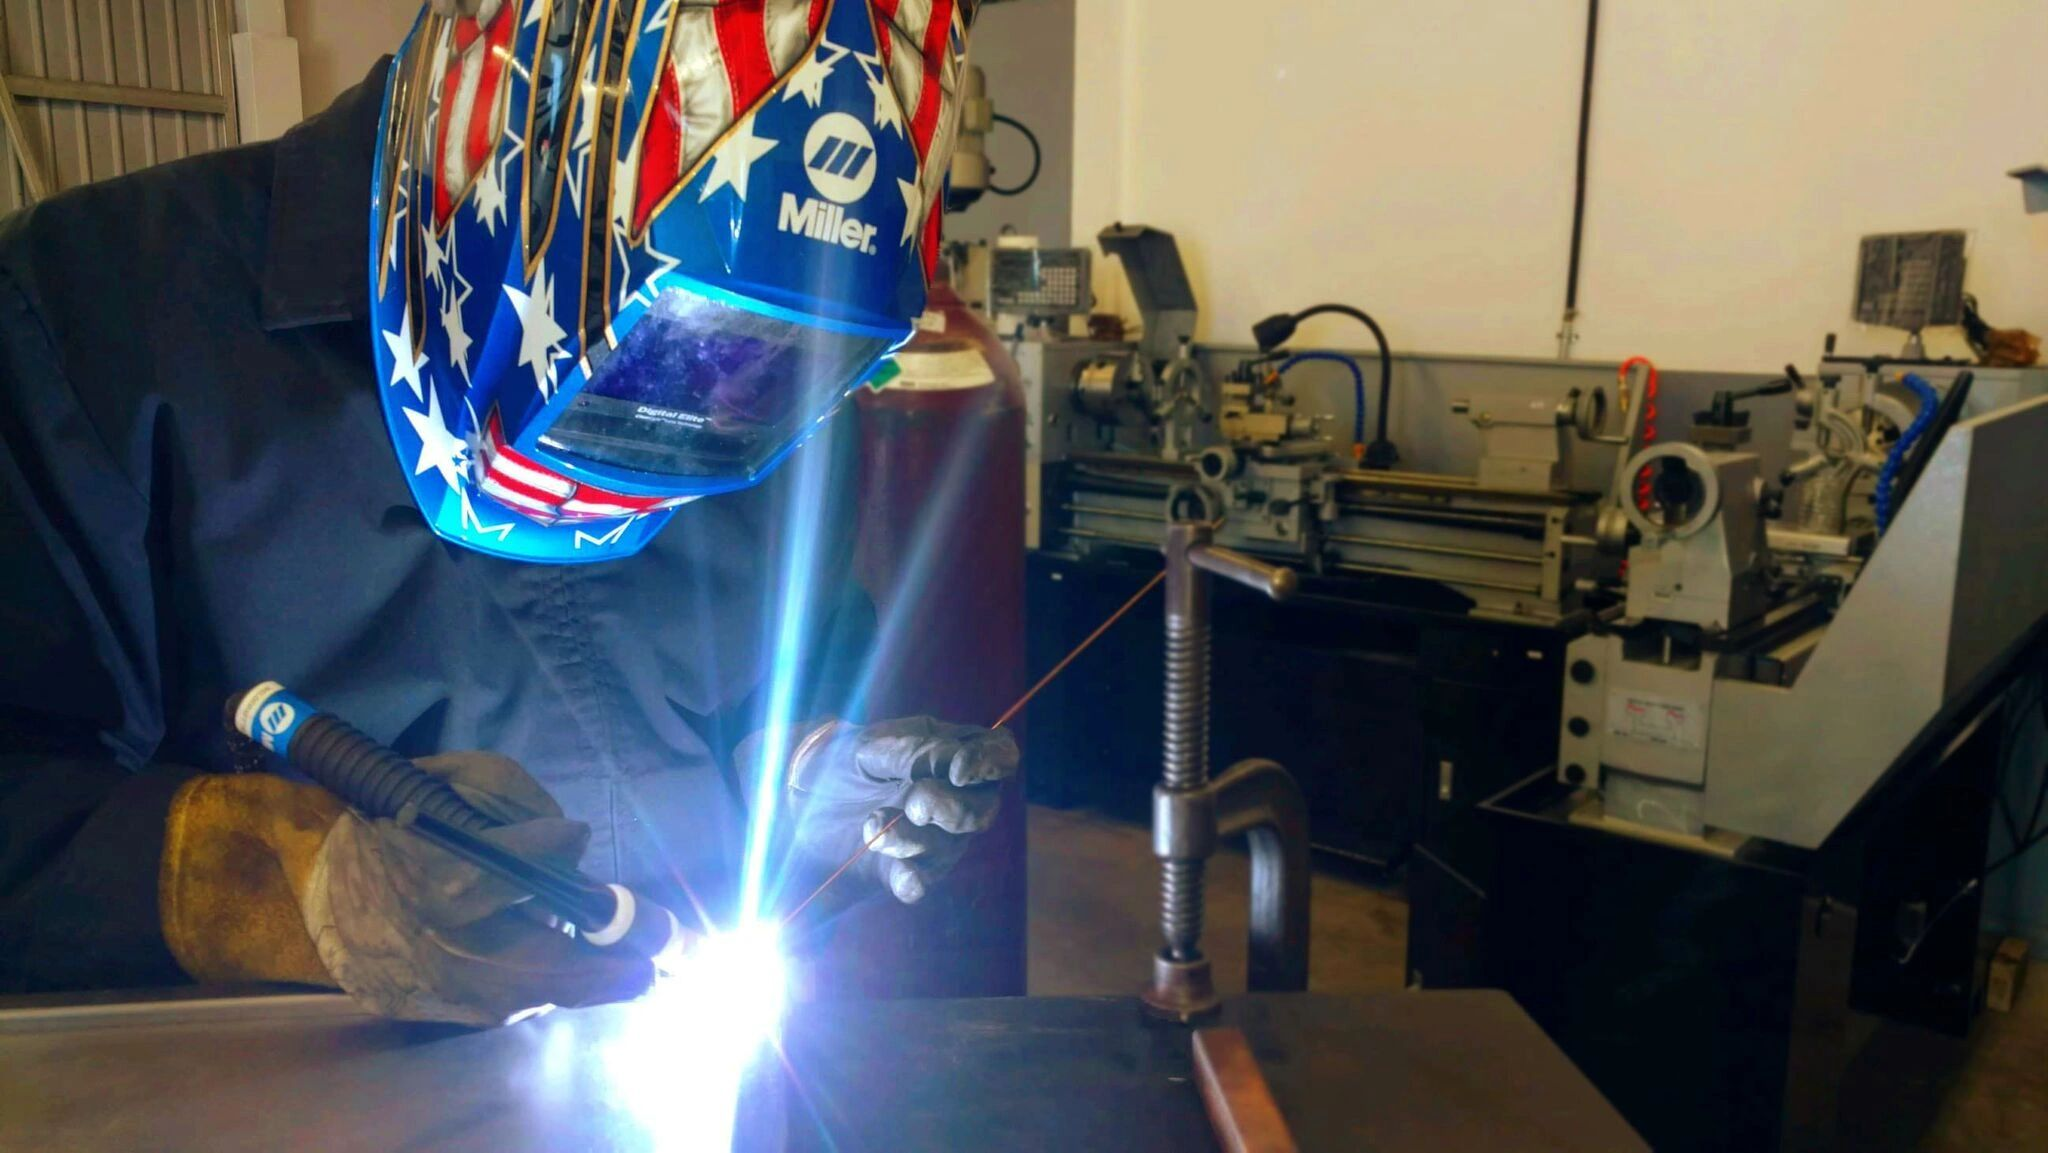 A sheet metal fabricator is working on a project for metal fabrication class.